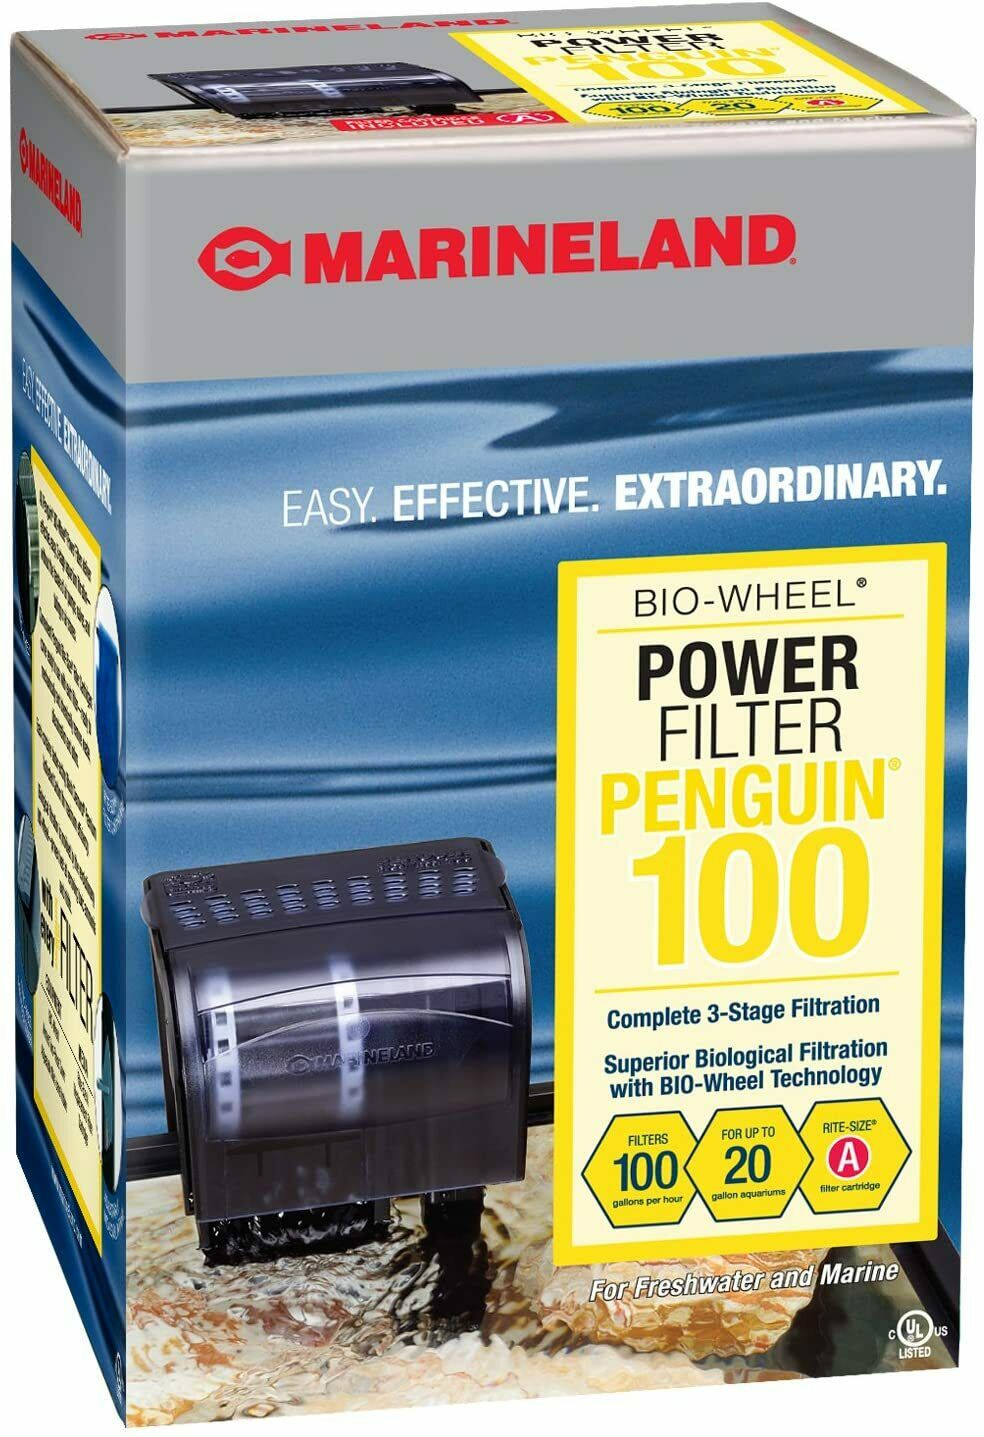 Penguin 100 Bio-Wheel Power Filter - Up to 20 gal.